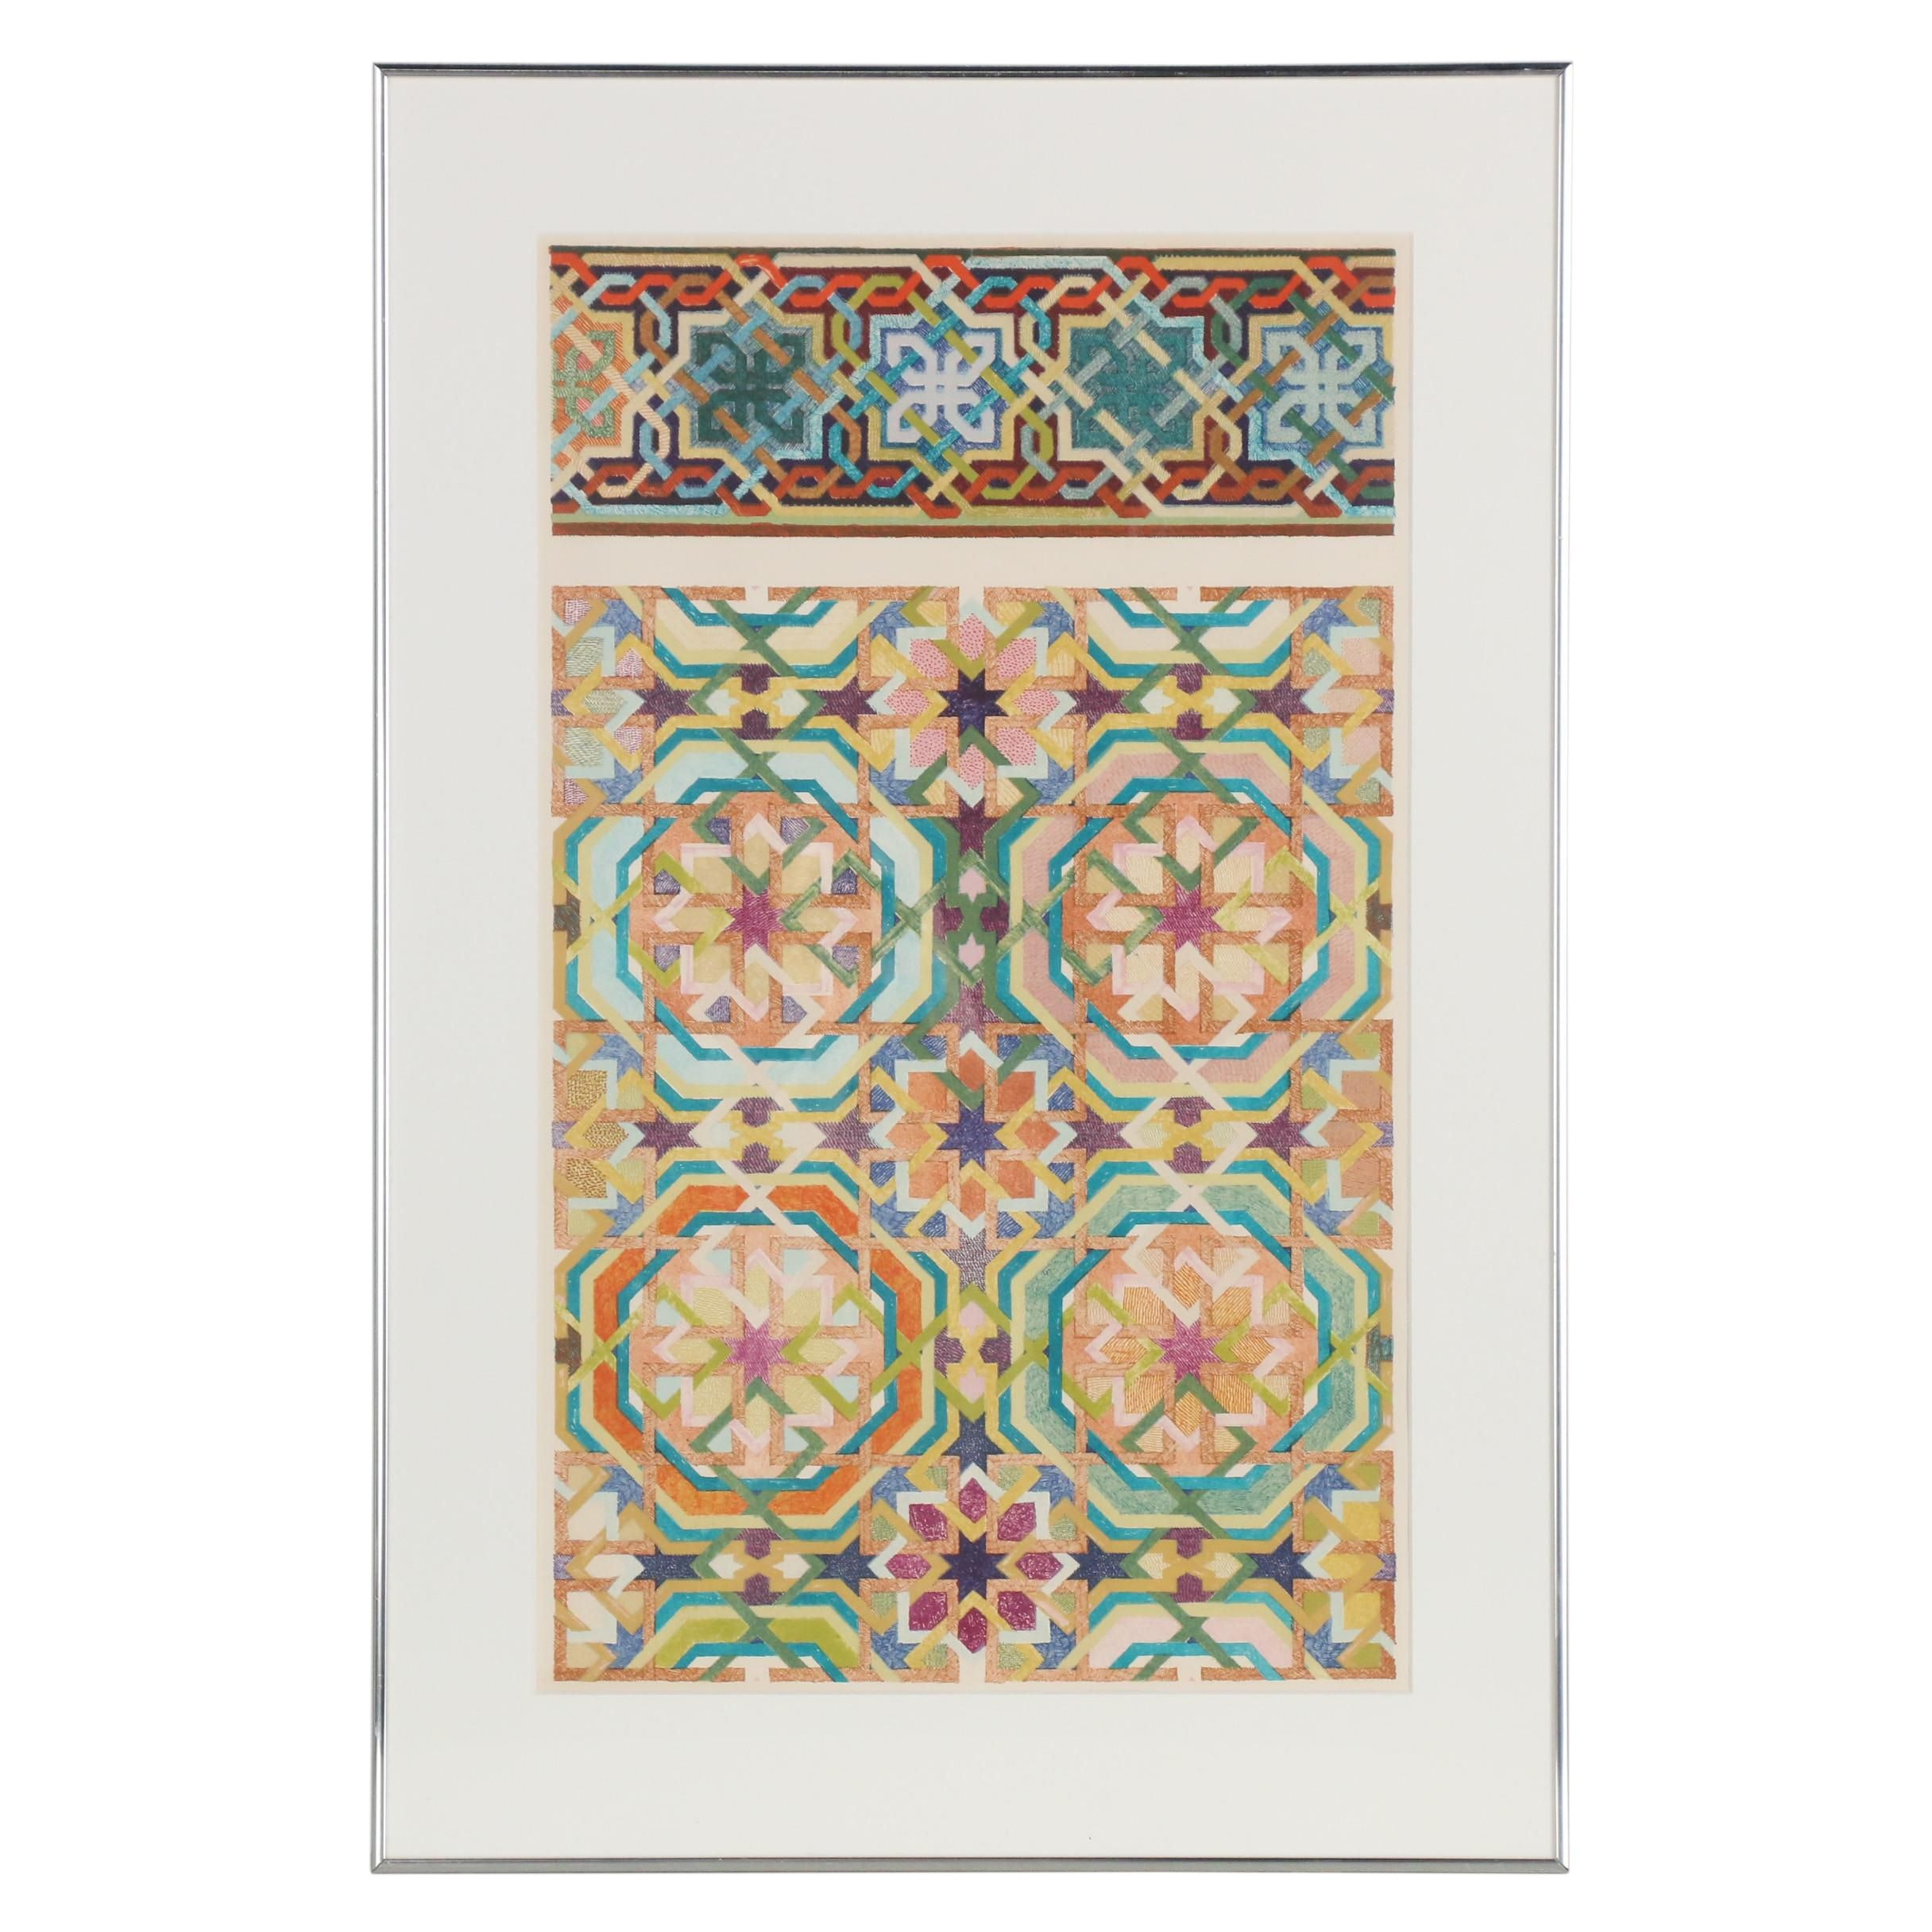 """Joyce Kozloff 1977 Lithograph """"Pictures and Borders III"""""""